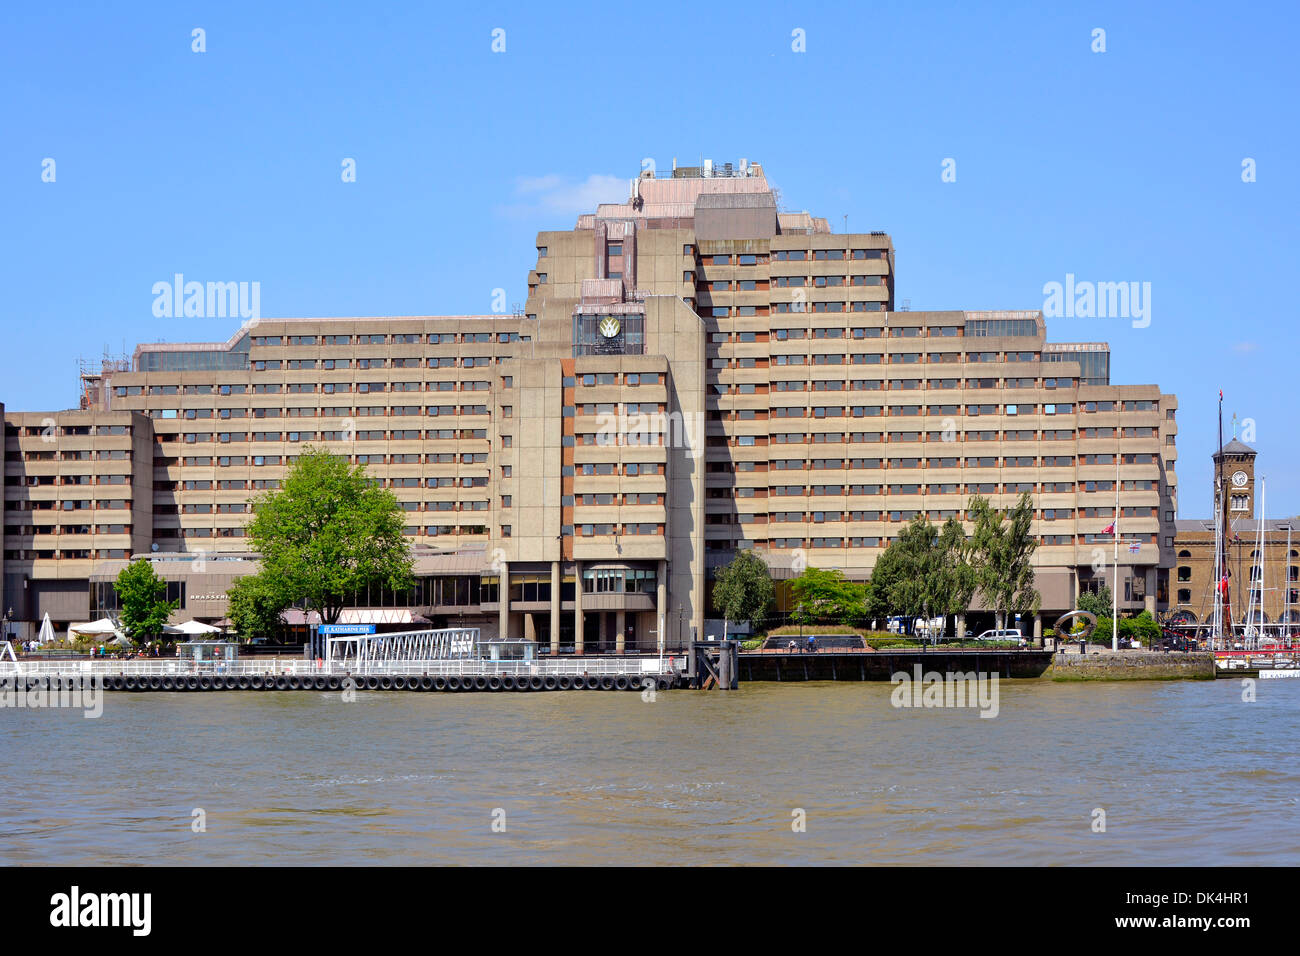 The GuomanTower Hotel and St Katharines pier beside River Thames - Stock Image